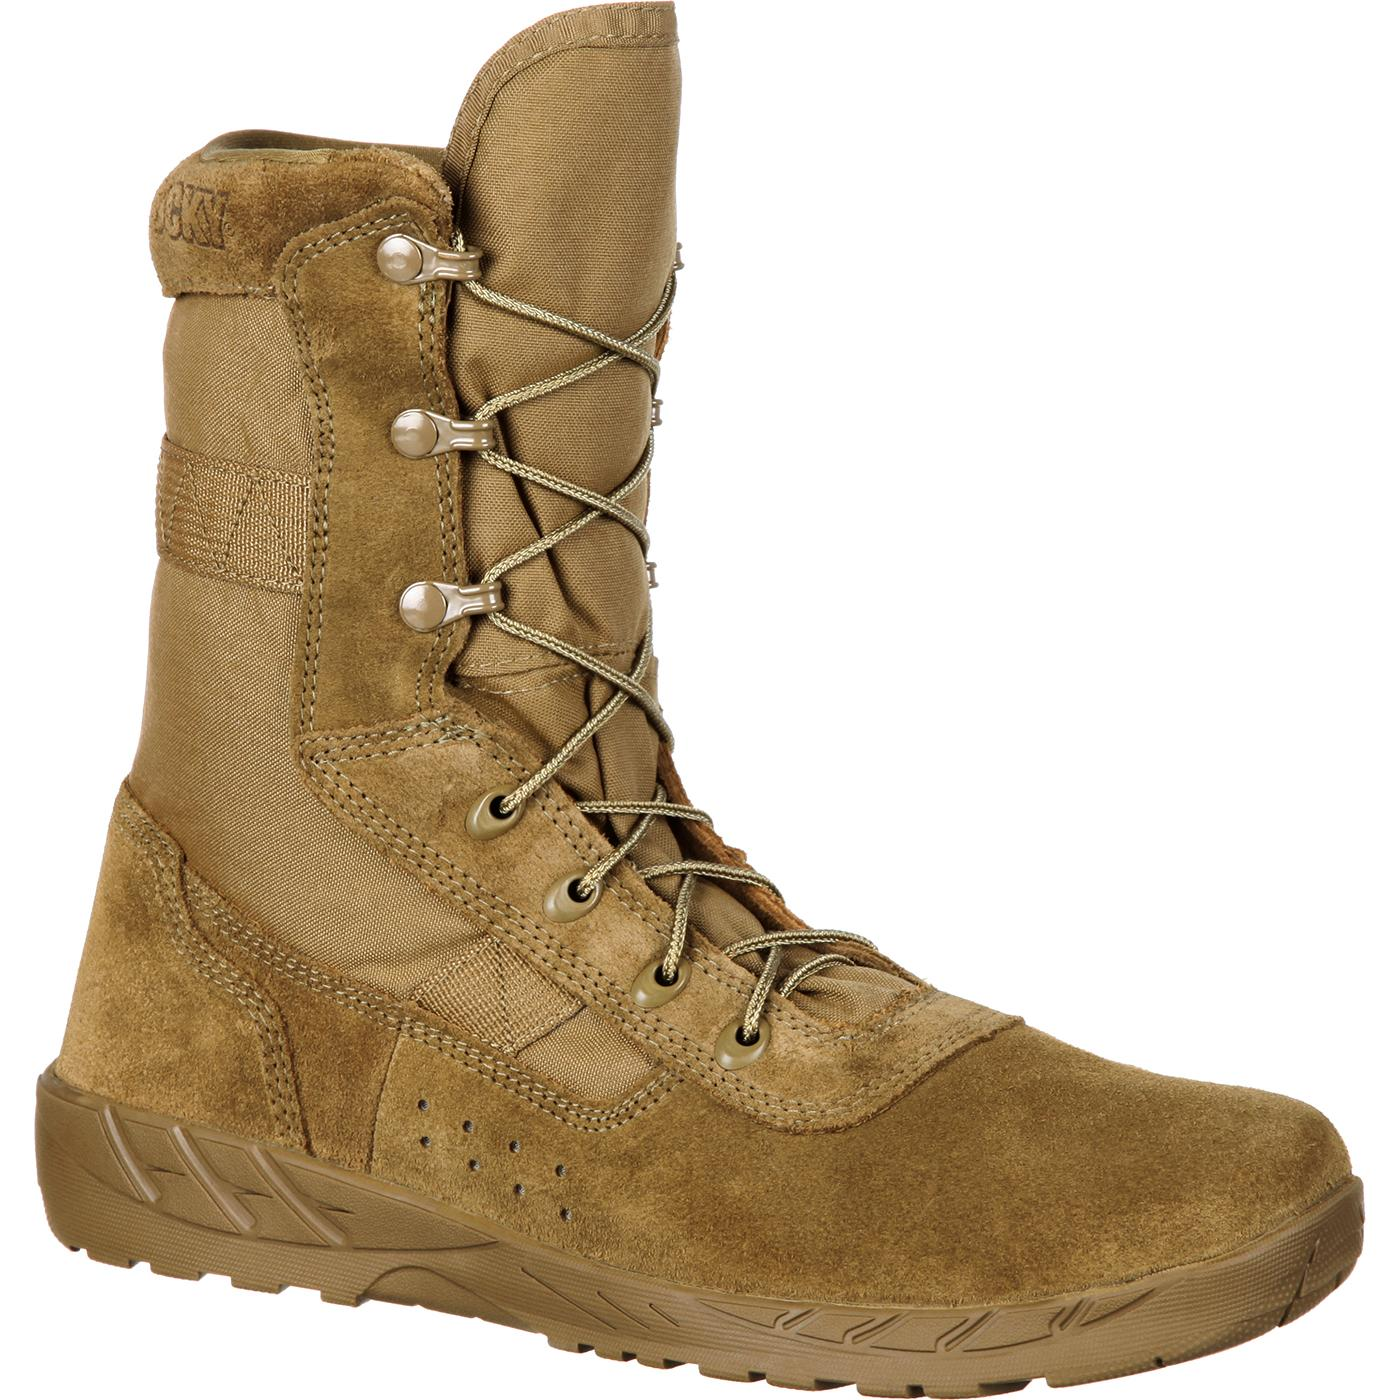 army boots rocky c7 cxt lightweight commercial military boot, , large OHMWZKE